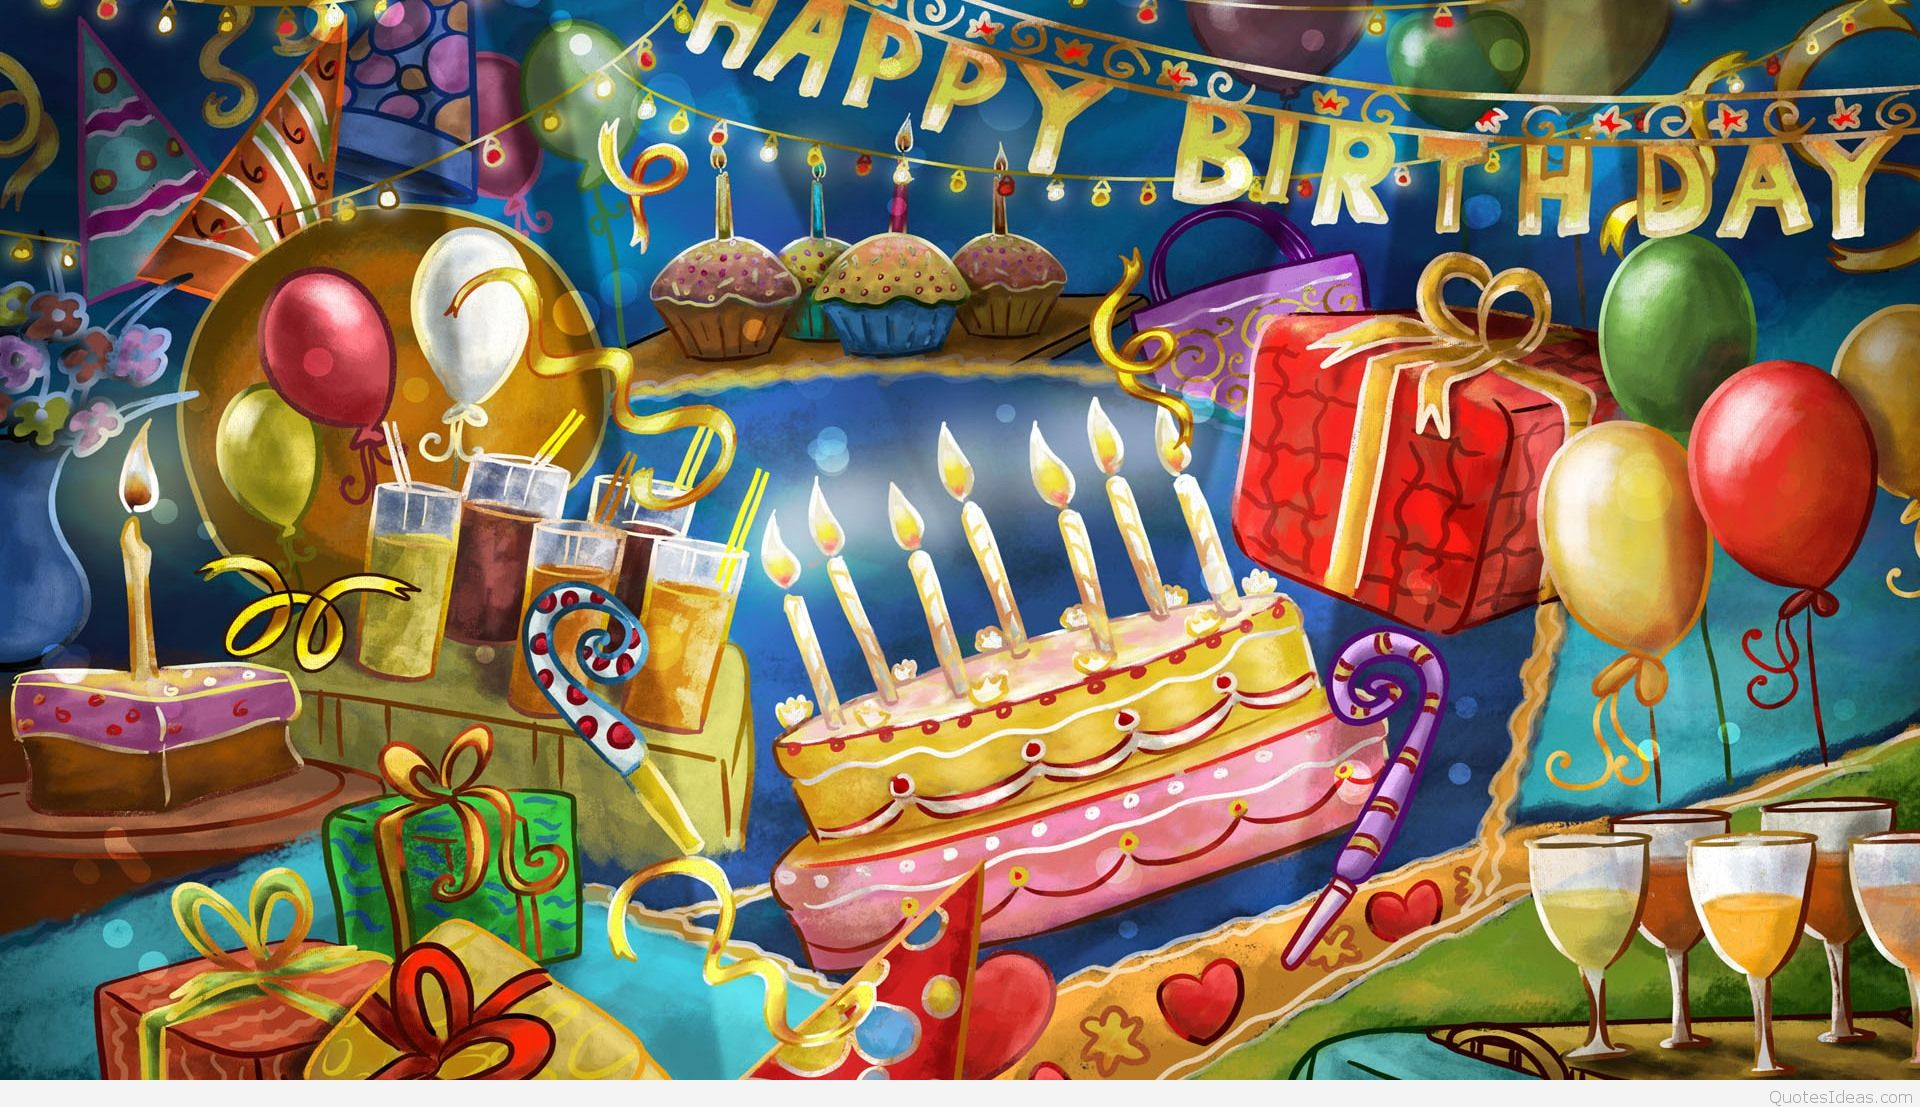 birthday picture messages free download ; happy-birthday-wishes-wallpaper-free-download